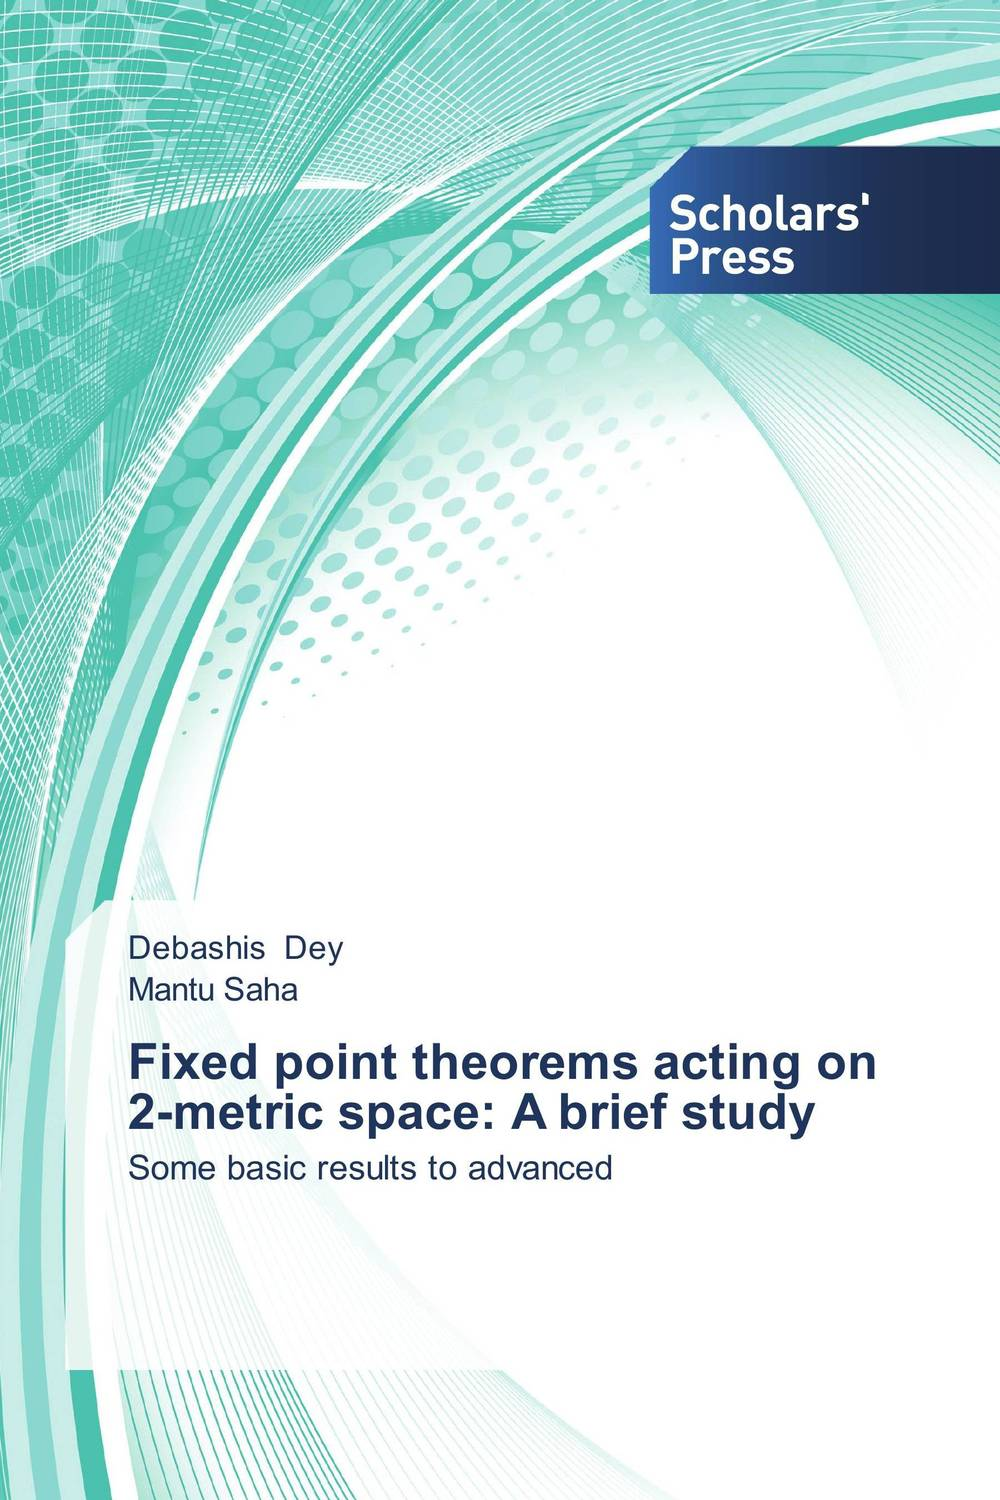 Fixed point theorems acting on 2-metric space: A brief study nirmal kumar singh and ravi prakash dubey fixed point theorems in topological spaces with application to fratal